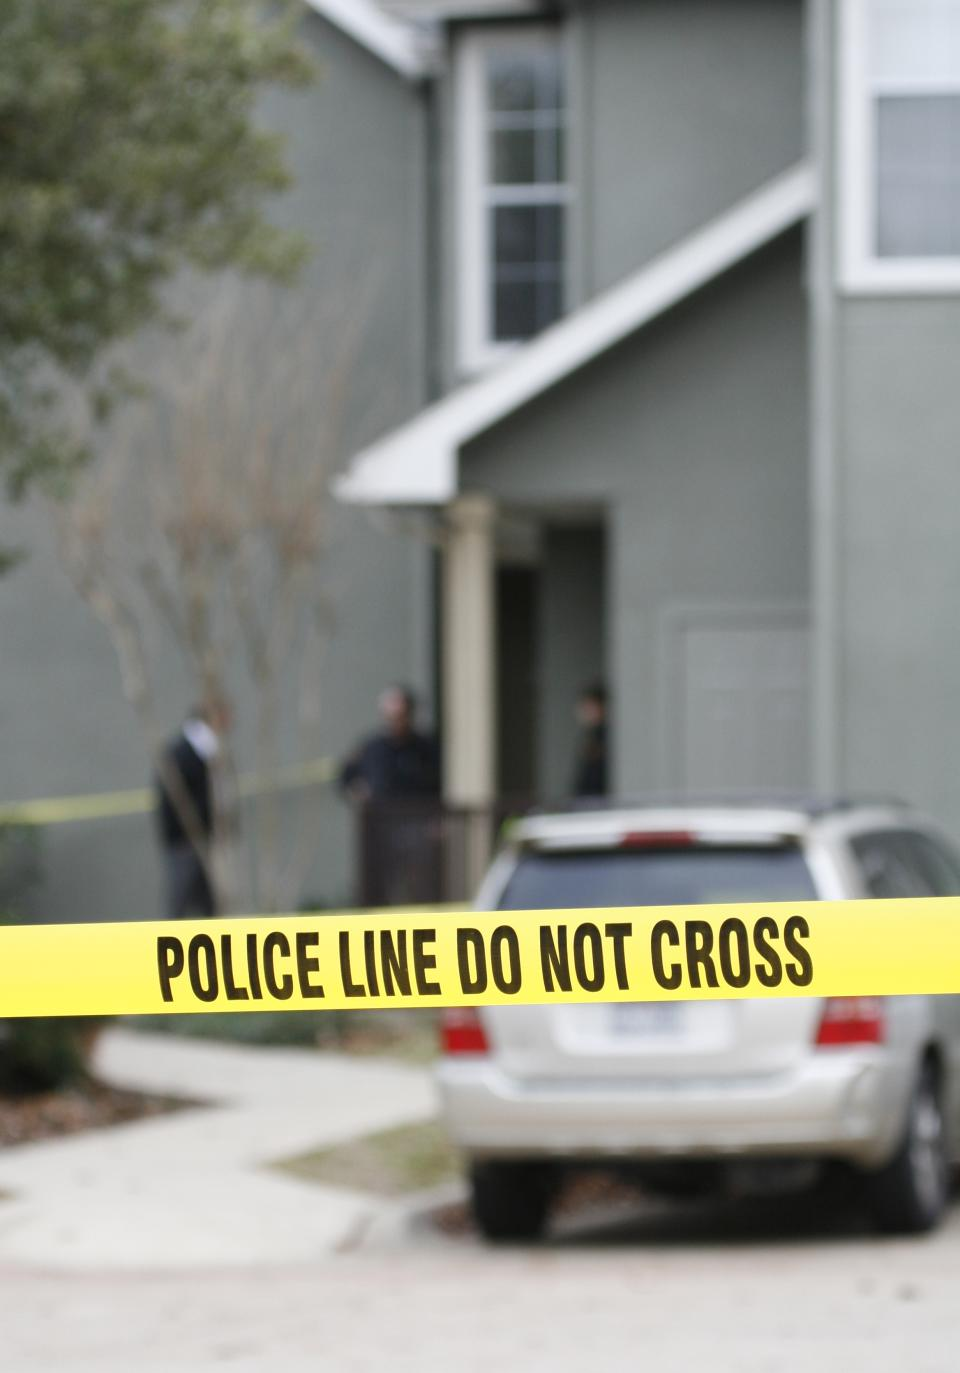 Police tape hangs in front of an apartment complex where 7 people were found dead, Sunday Dec. 25, 2010, in Grapevine, Texas. Four women and three men who police believe to be related were found apparently shot to death, and authorities said they believe the shooter is among the dead  (AP Photo/Mike Fuentes)